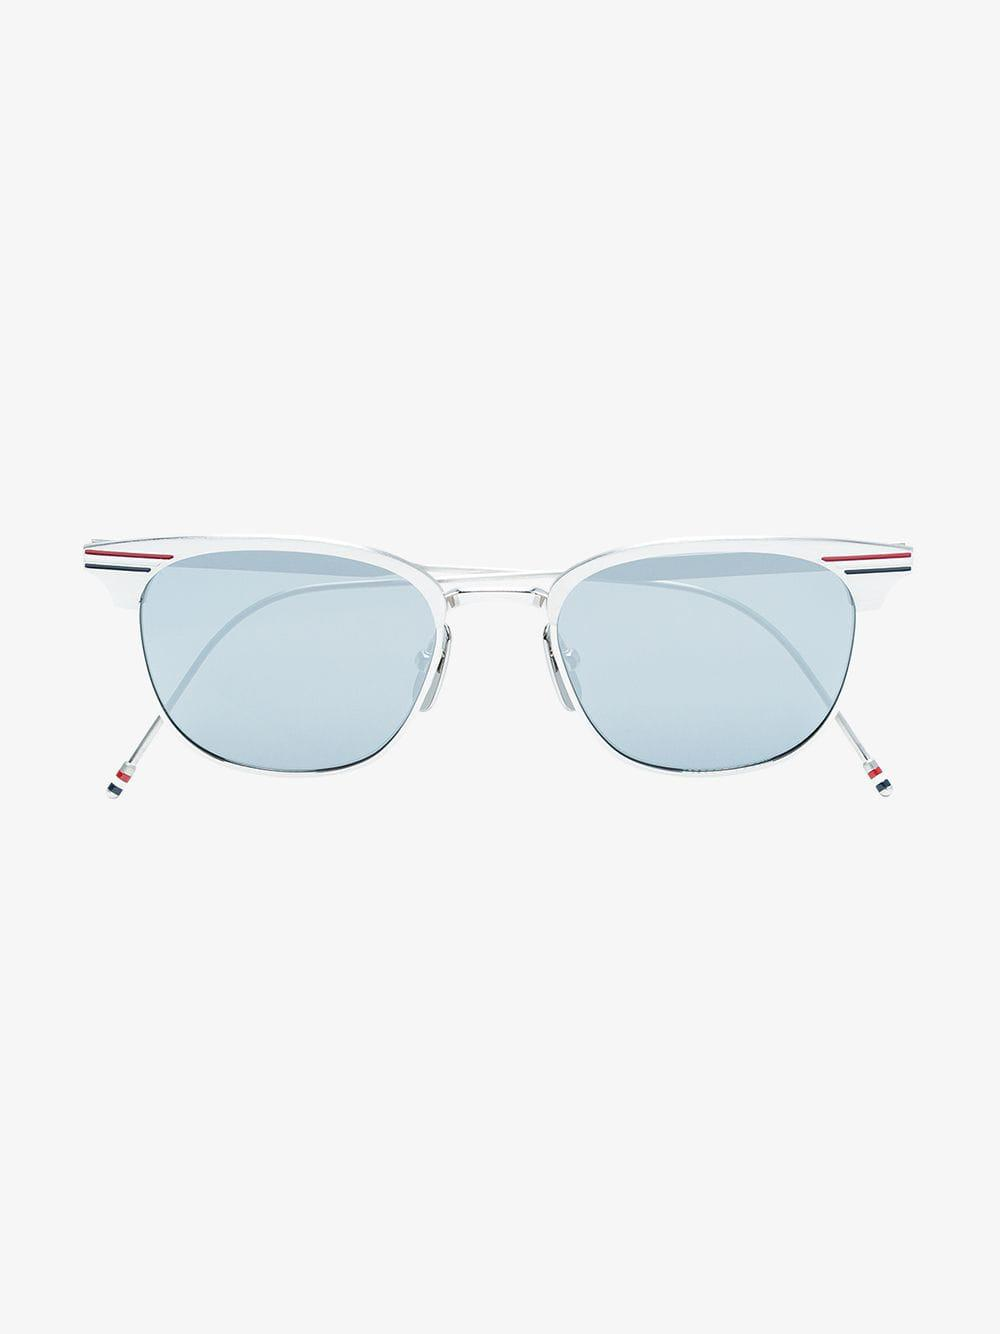 78b01531aa6 Thom Browne - Grey Metallic Sunglasses With Tricolour Stripe for Men - Lyst.  View fullscreen